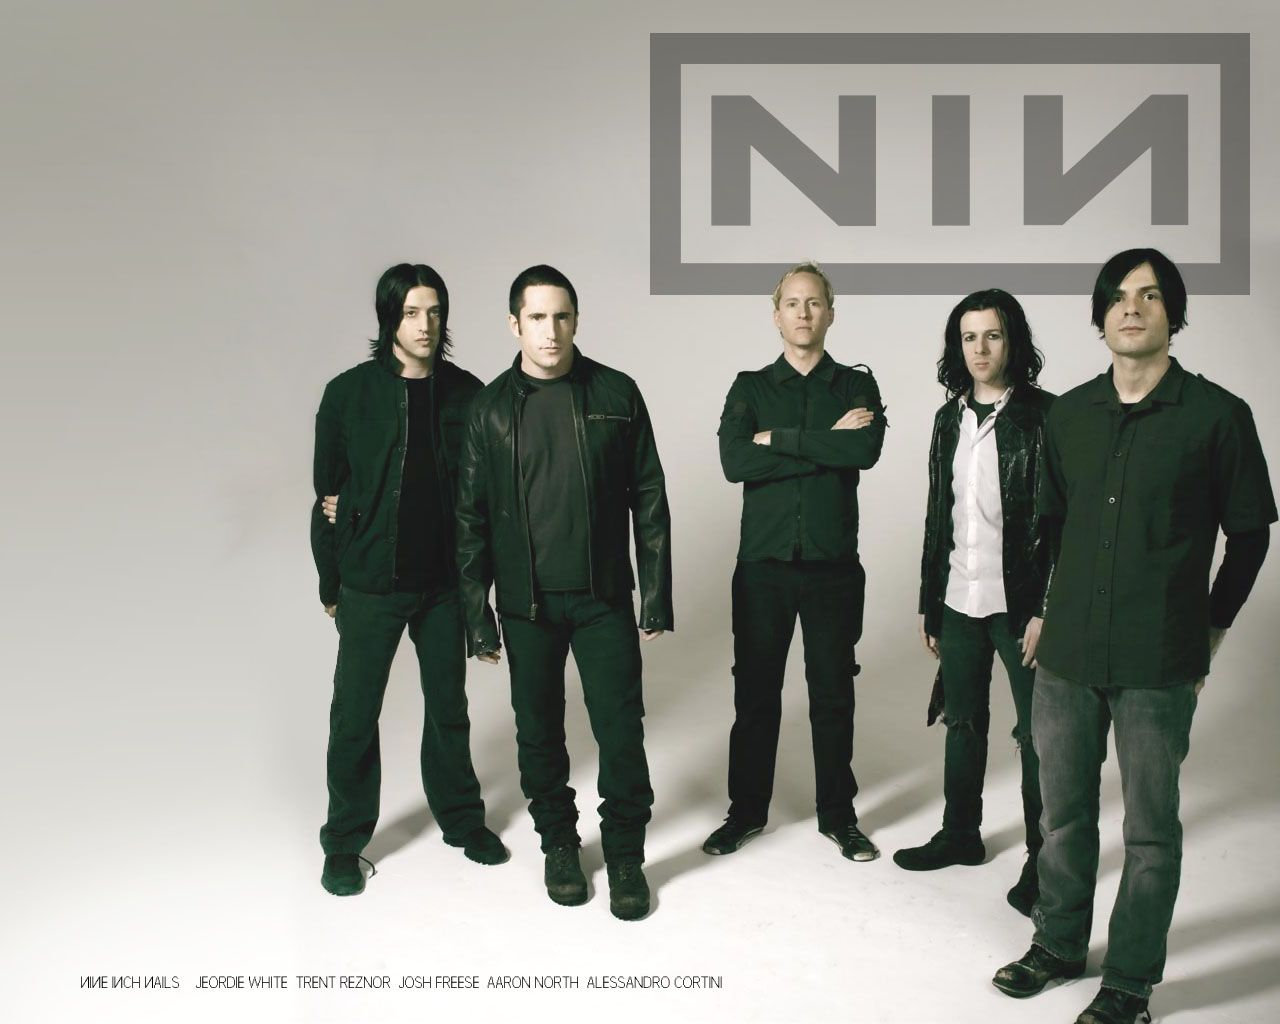 The project apparently has the full support of Nine Inch Nails ...